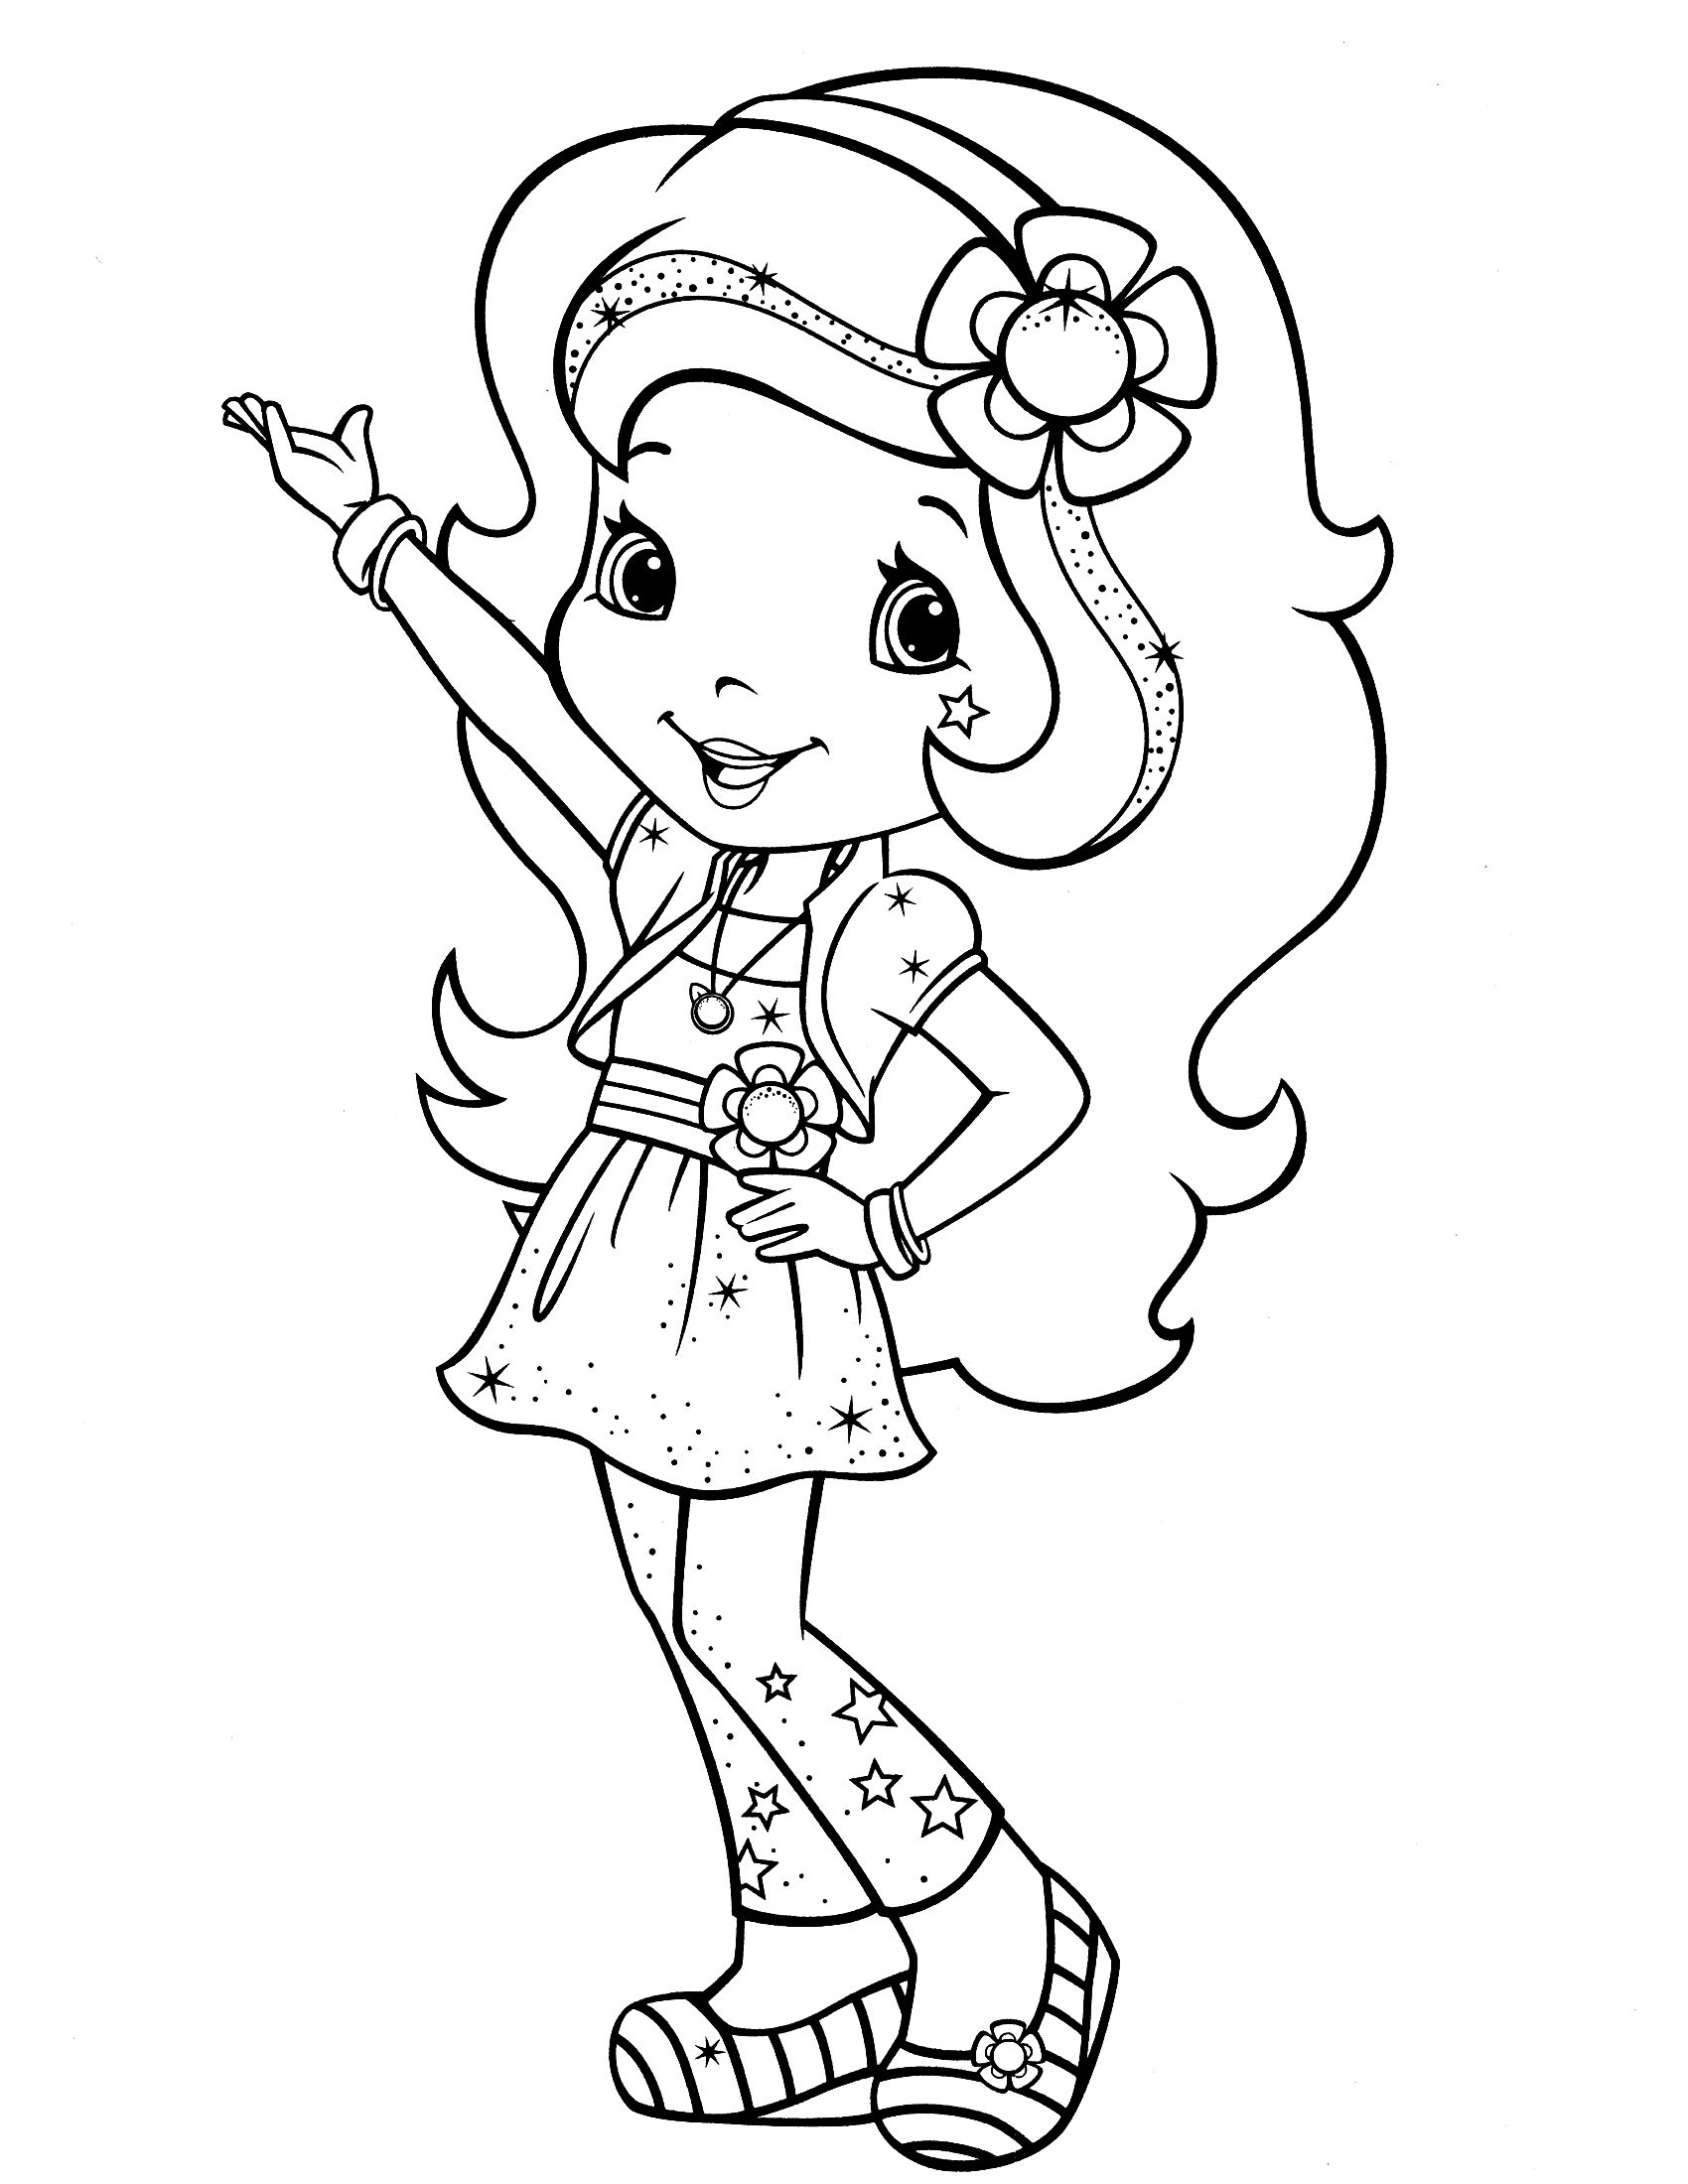 Spring rain coloring pages - Download Strawberry Shortcake Coloring Pages